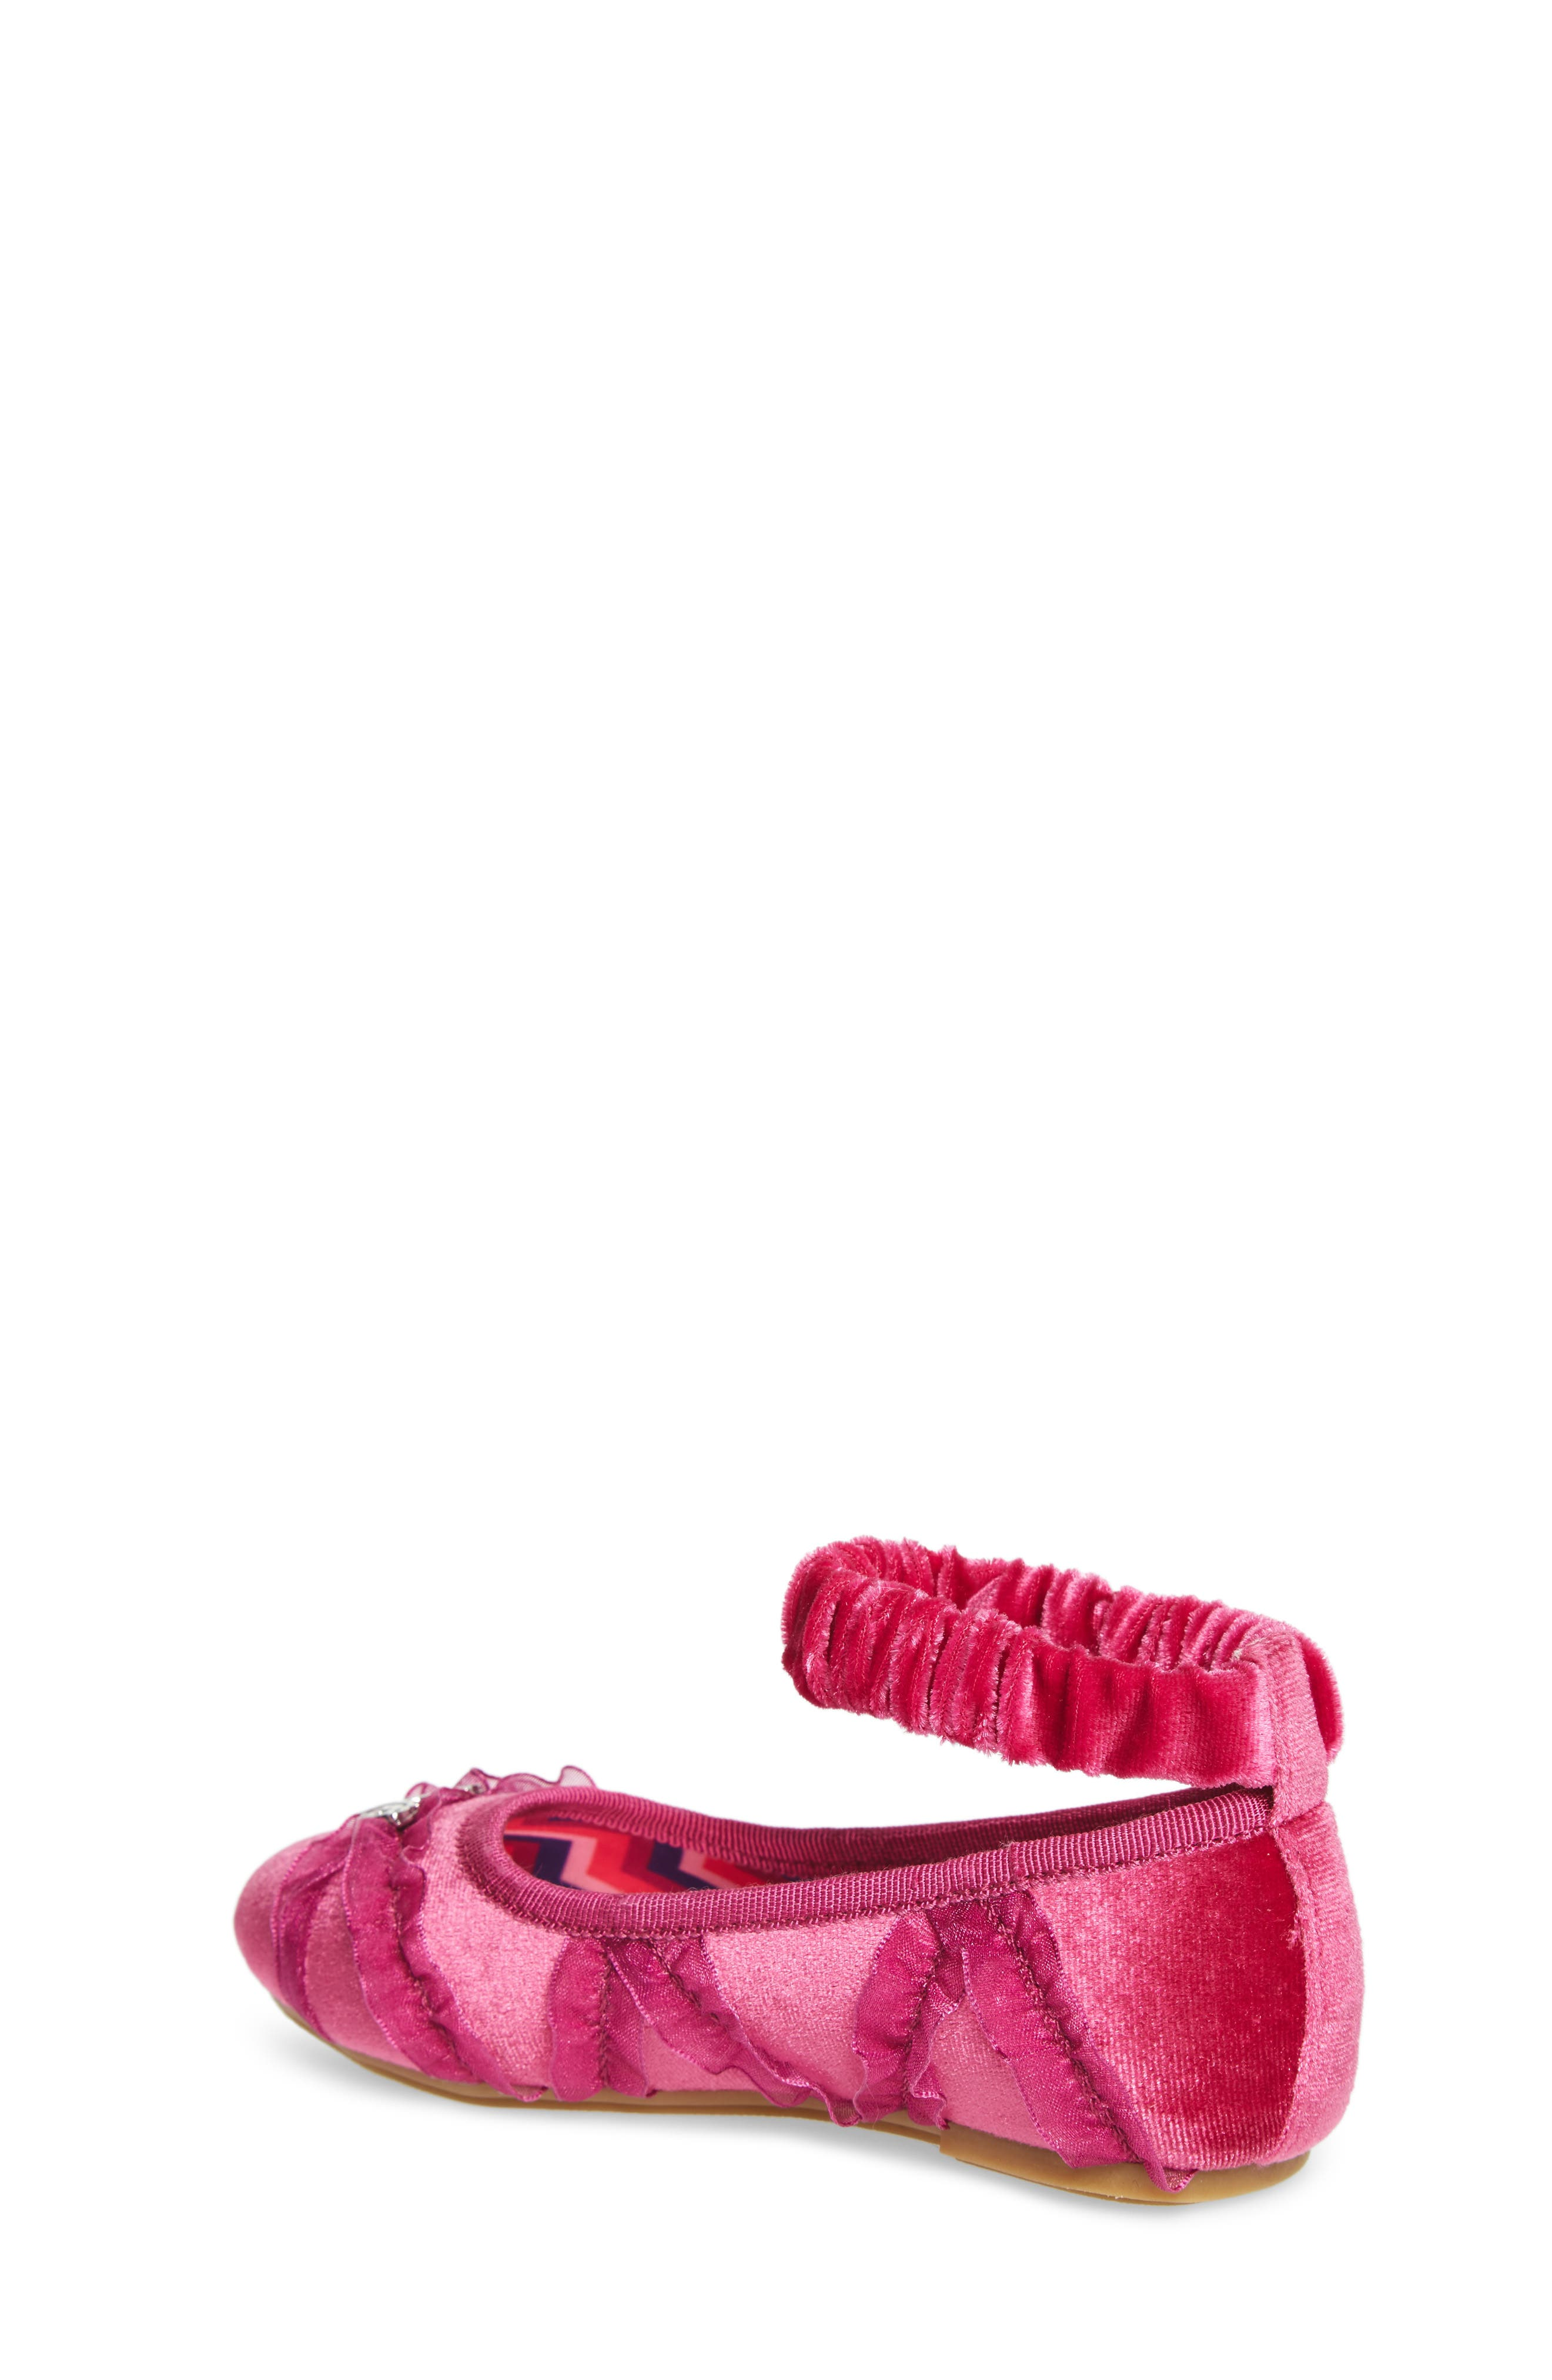 Emerson Ankle Strap Ballet Flat,                             Alternate thumbnail 2, color,                             Pink Multi